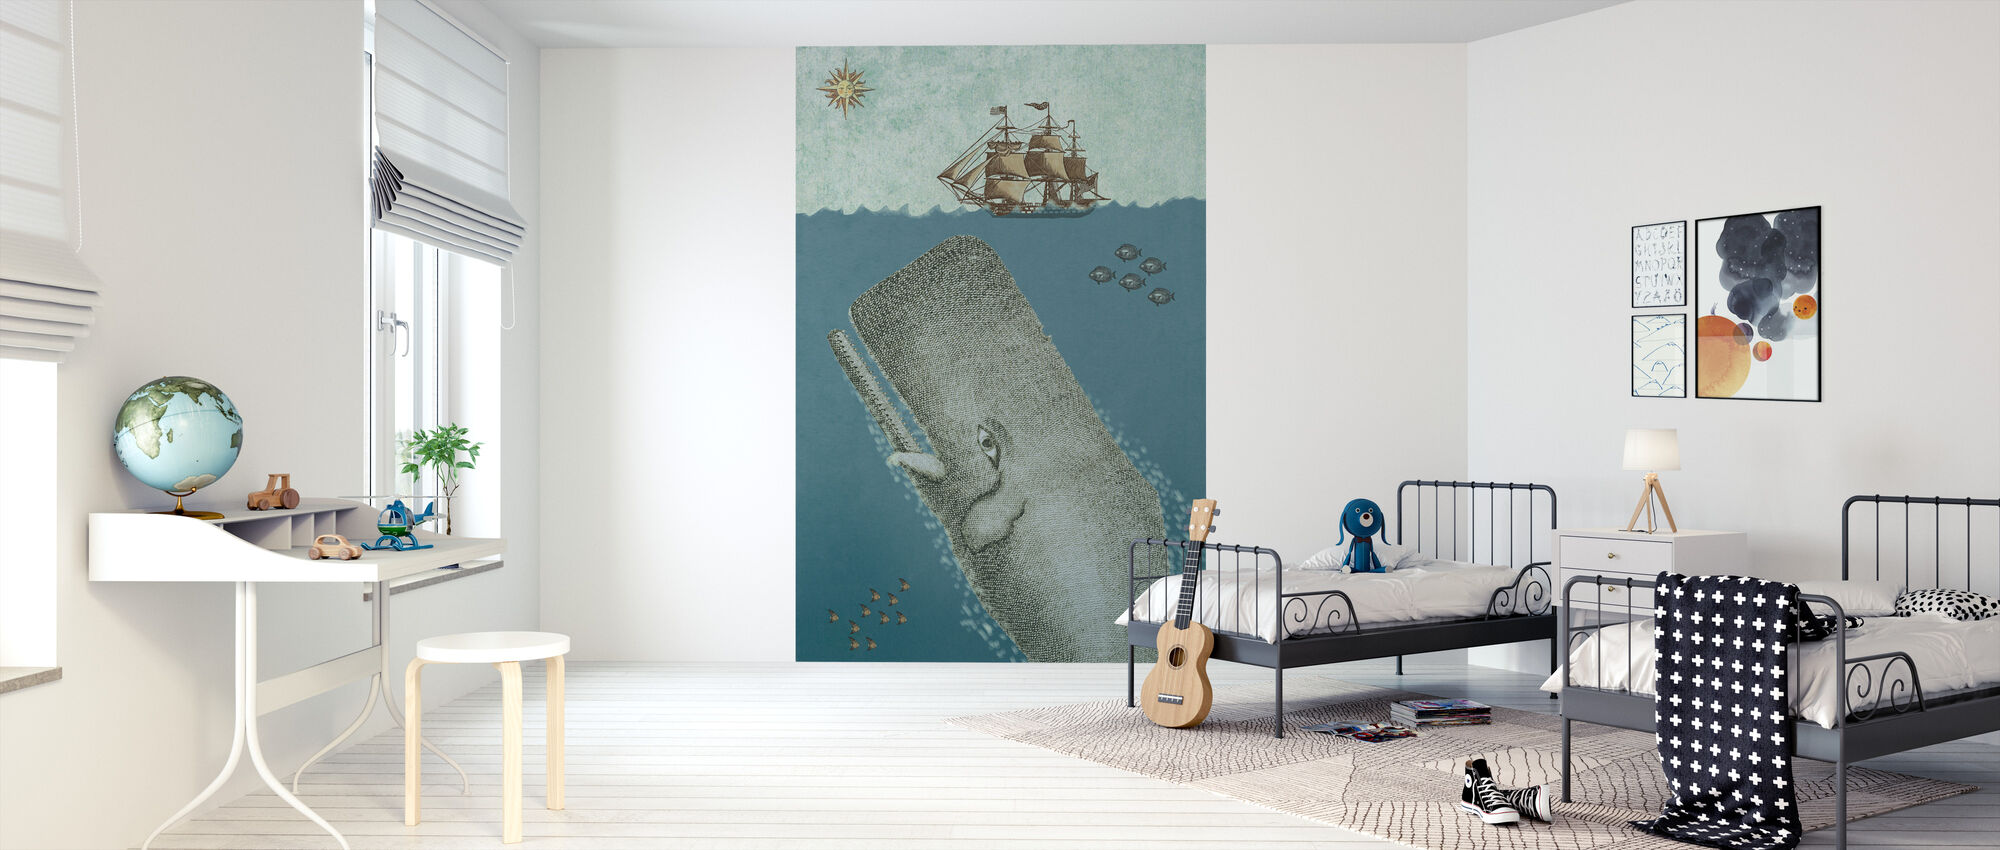 Whale and Ship - Wallpaper - Kids Room